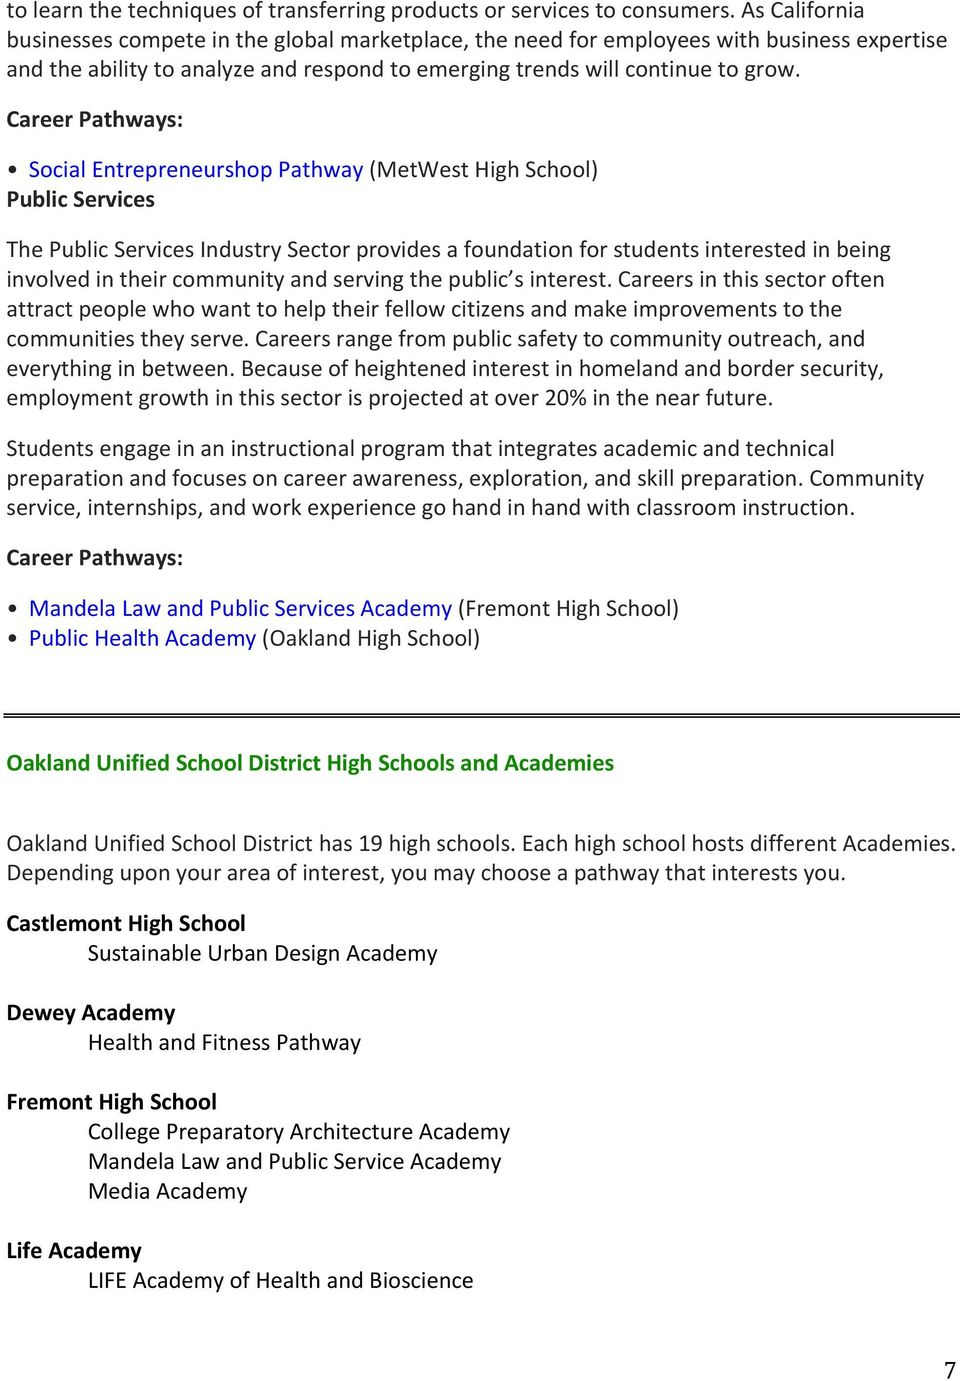 Career Pathways: Social Entrepreneurshop Pathway (MetWest High School) Public Services The Public Services Industry Sector provides a foundation for students interested in being involved in their